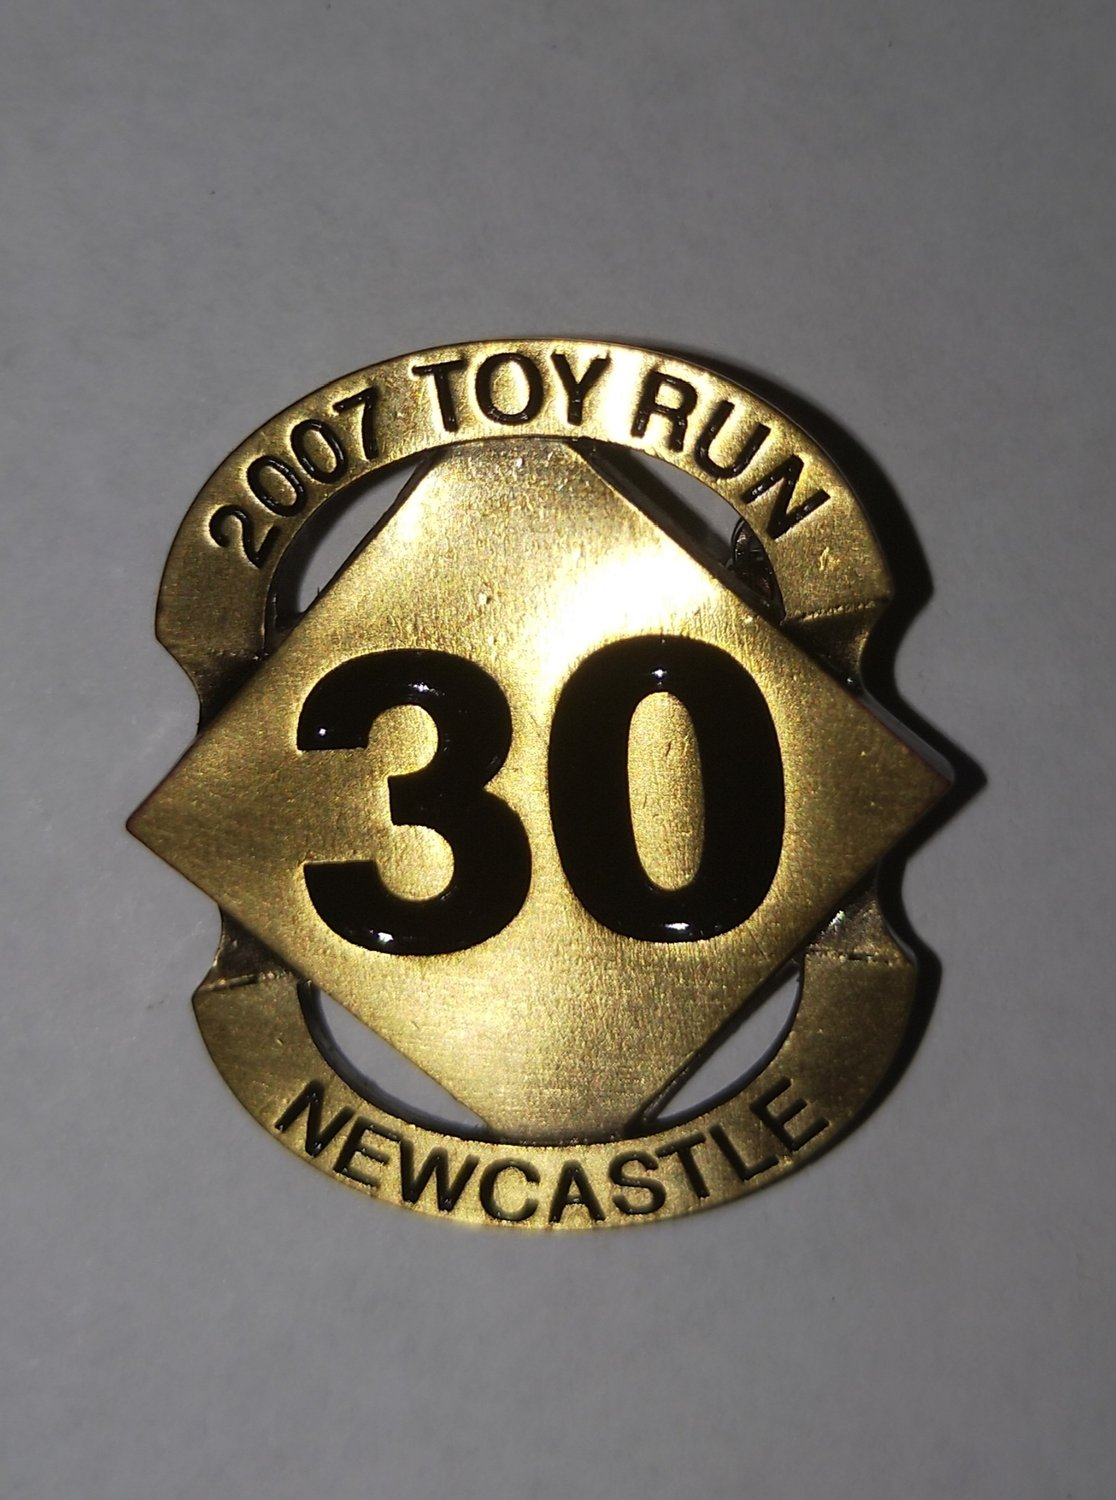 2007 Commemorative metal badge (safety pin)